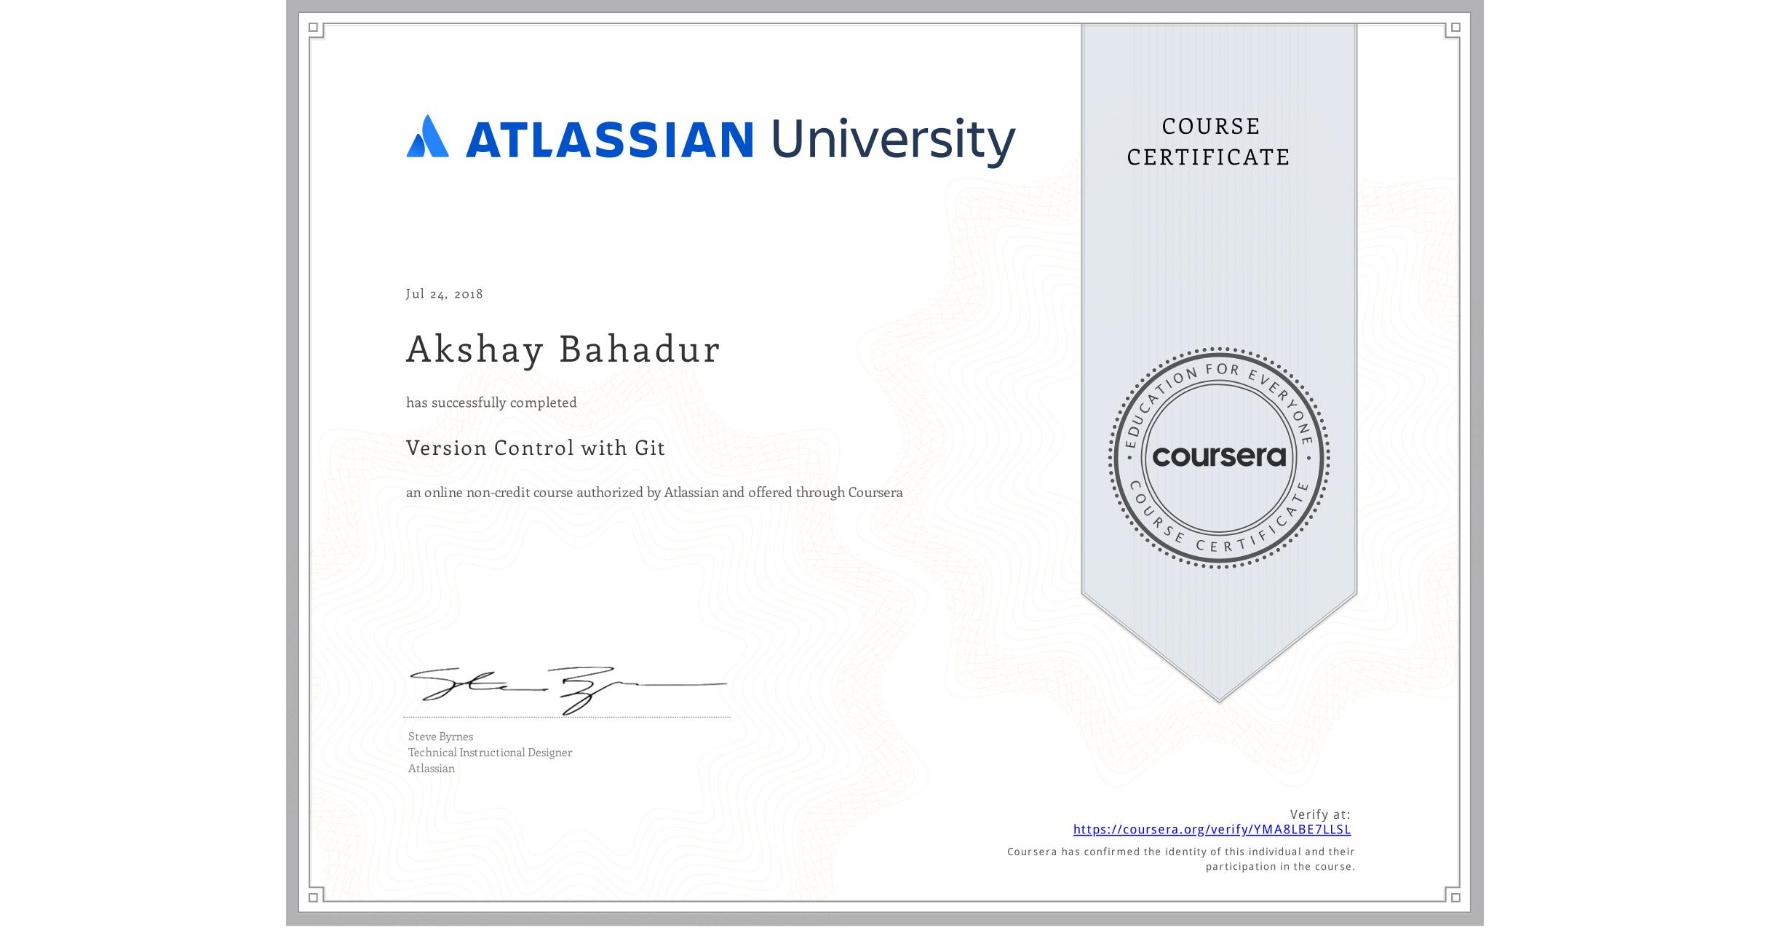 View certificate for Akshay Bahadur, Version Control with Git, an online non-credit course authorized by Atlassian and offered through Coursera